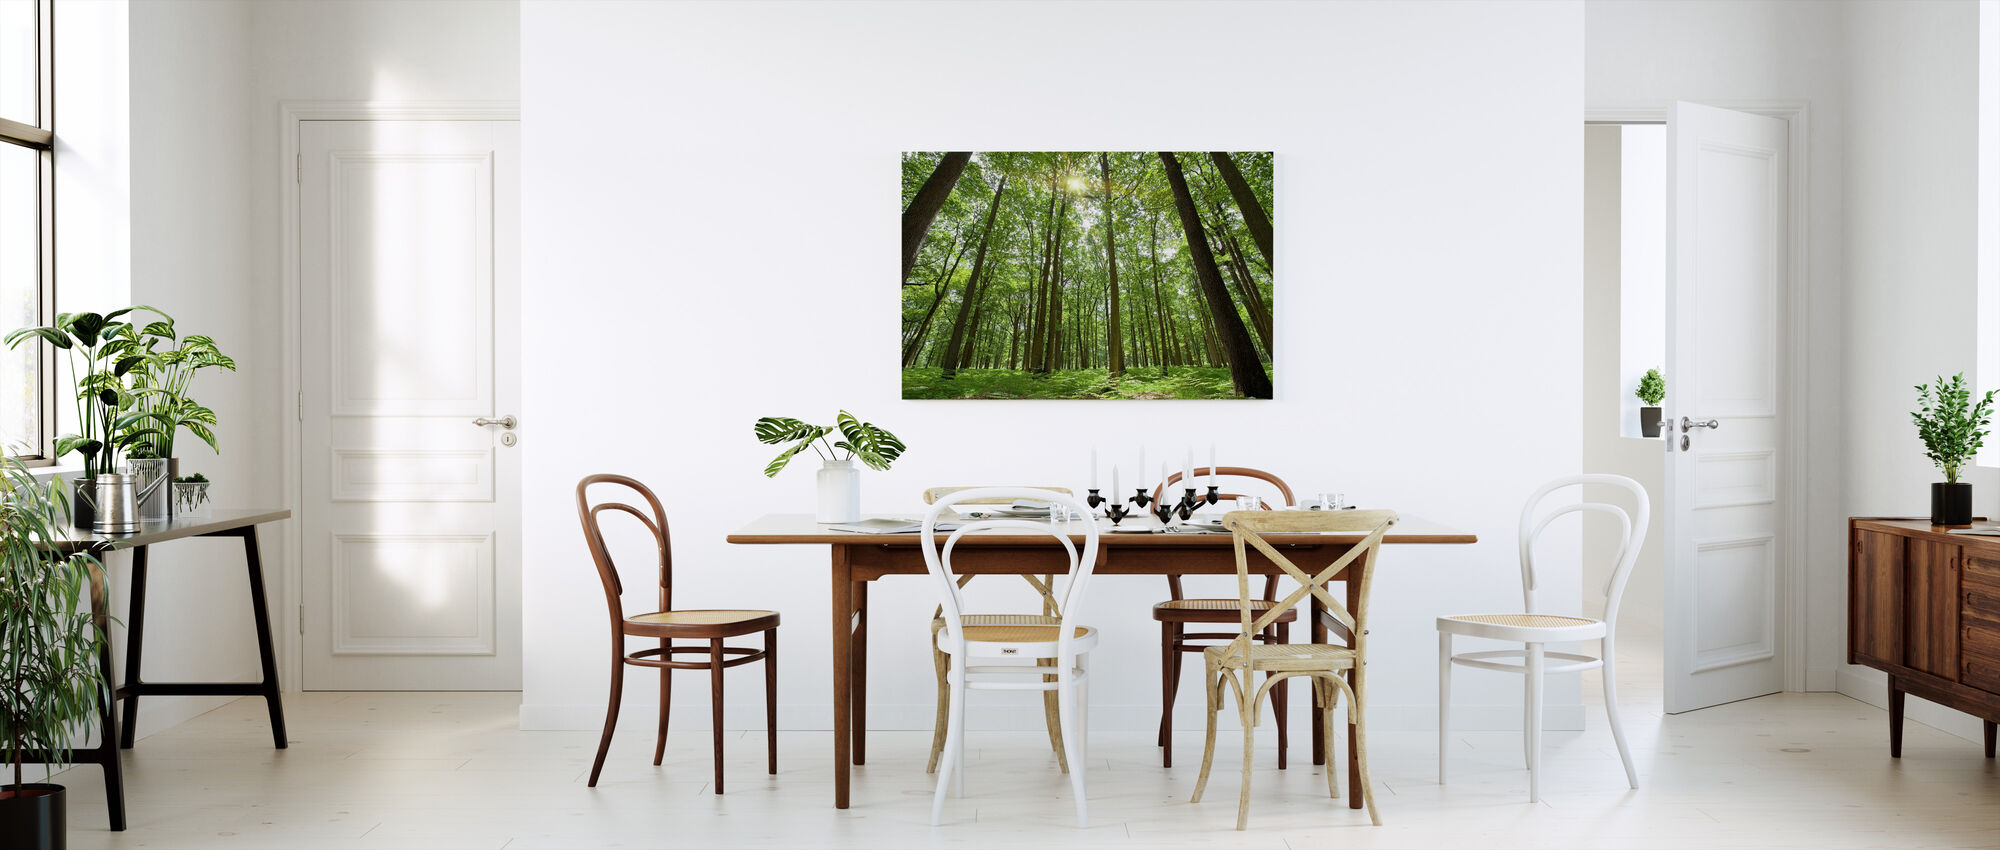 Emerald Green Forest - Canvas print - Kitchen